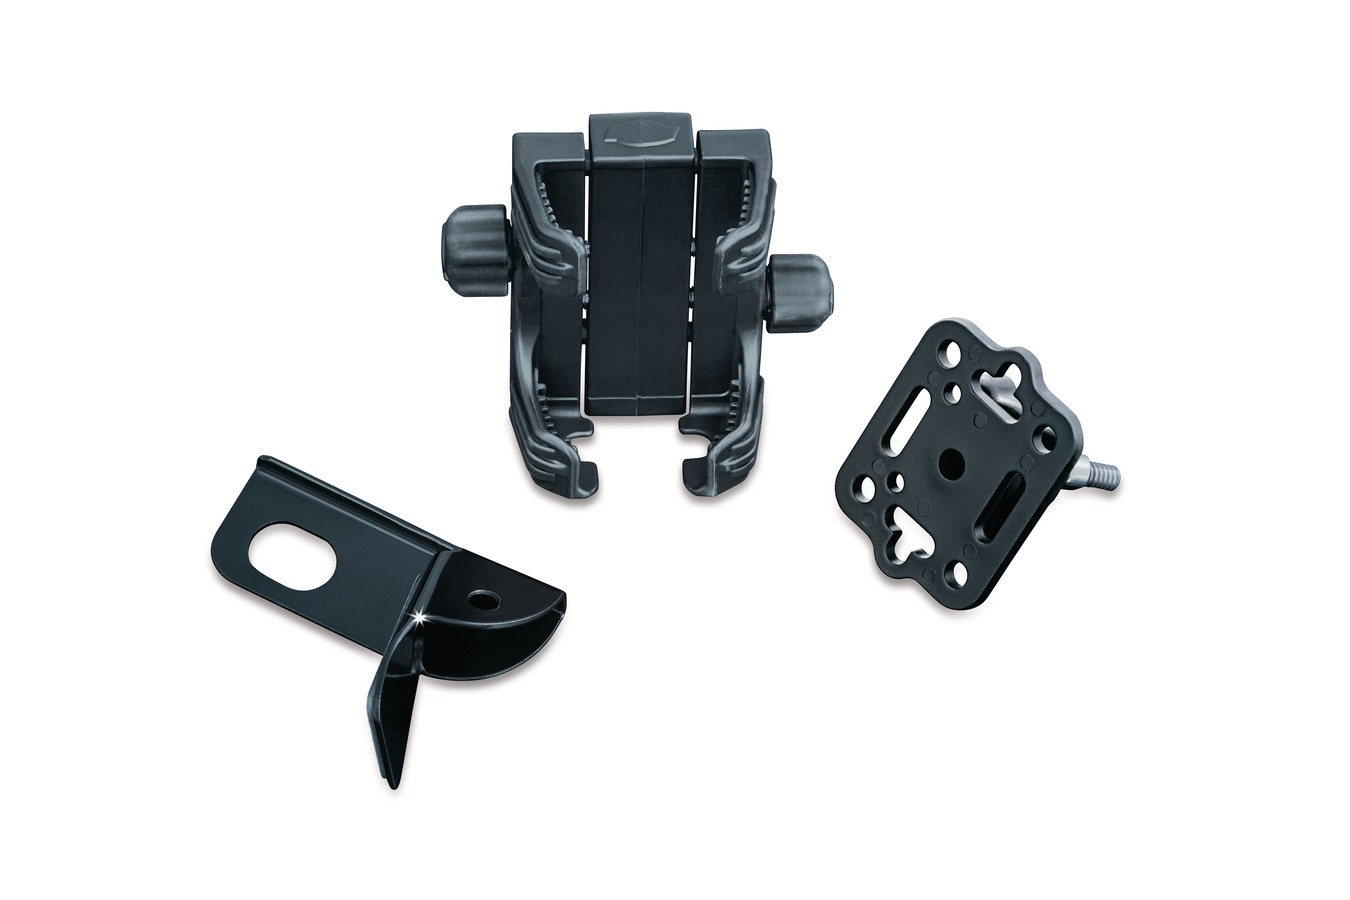 Fairing Mount Tech-Connect Device Mounting System